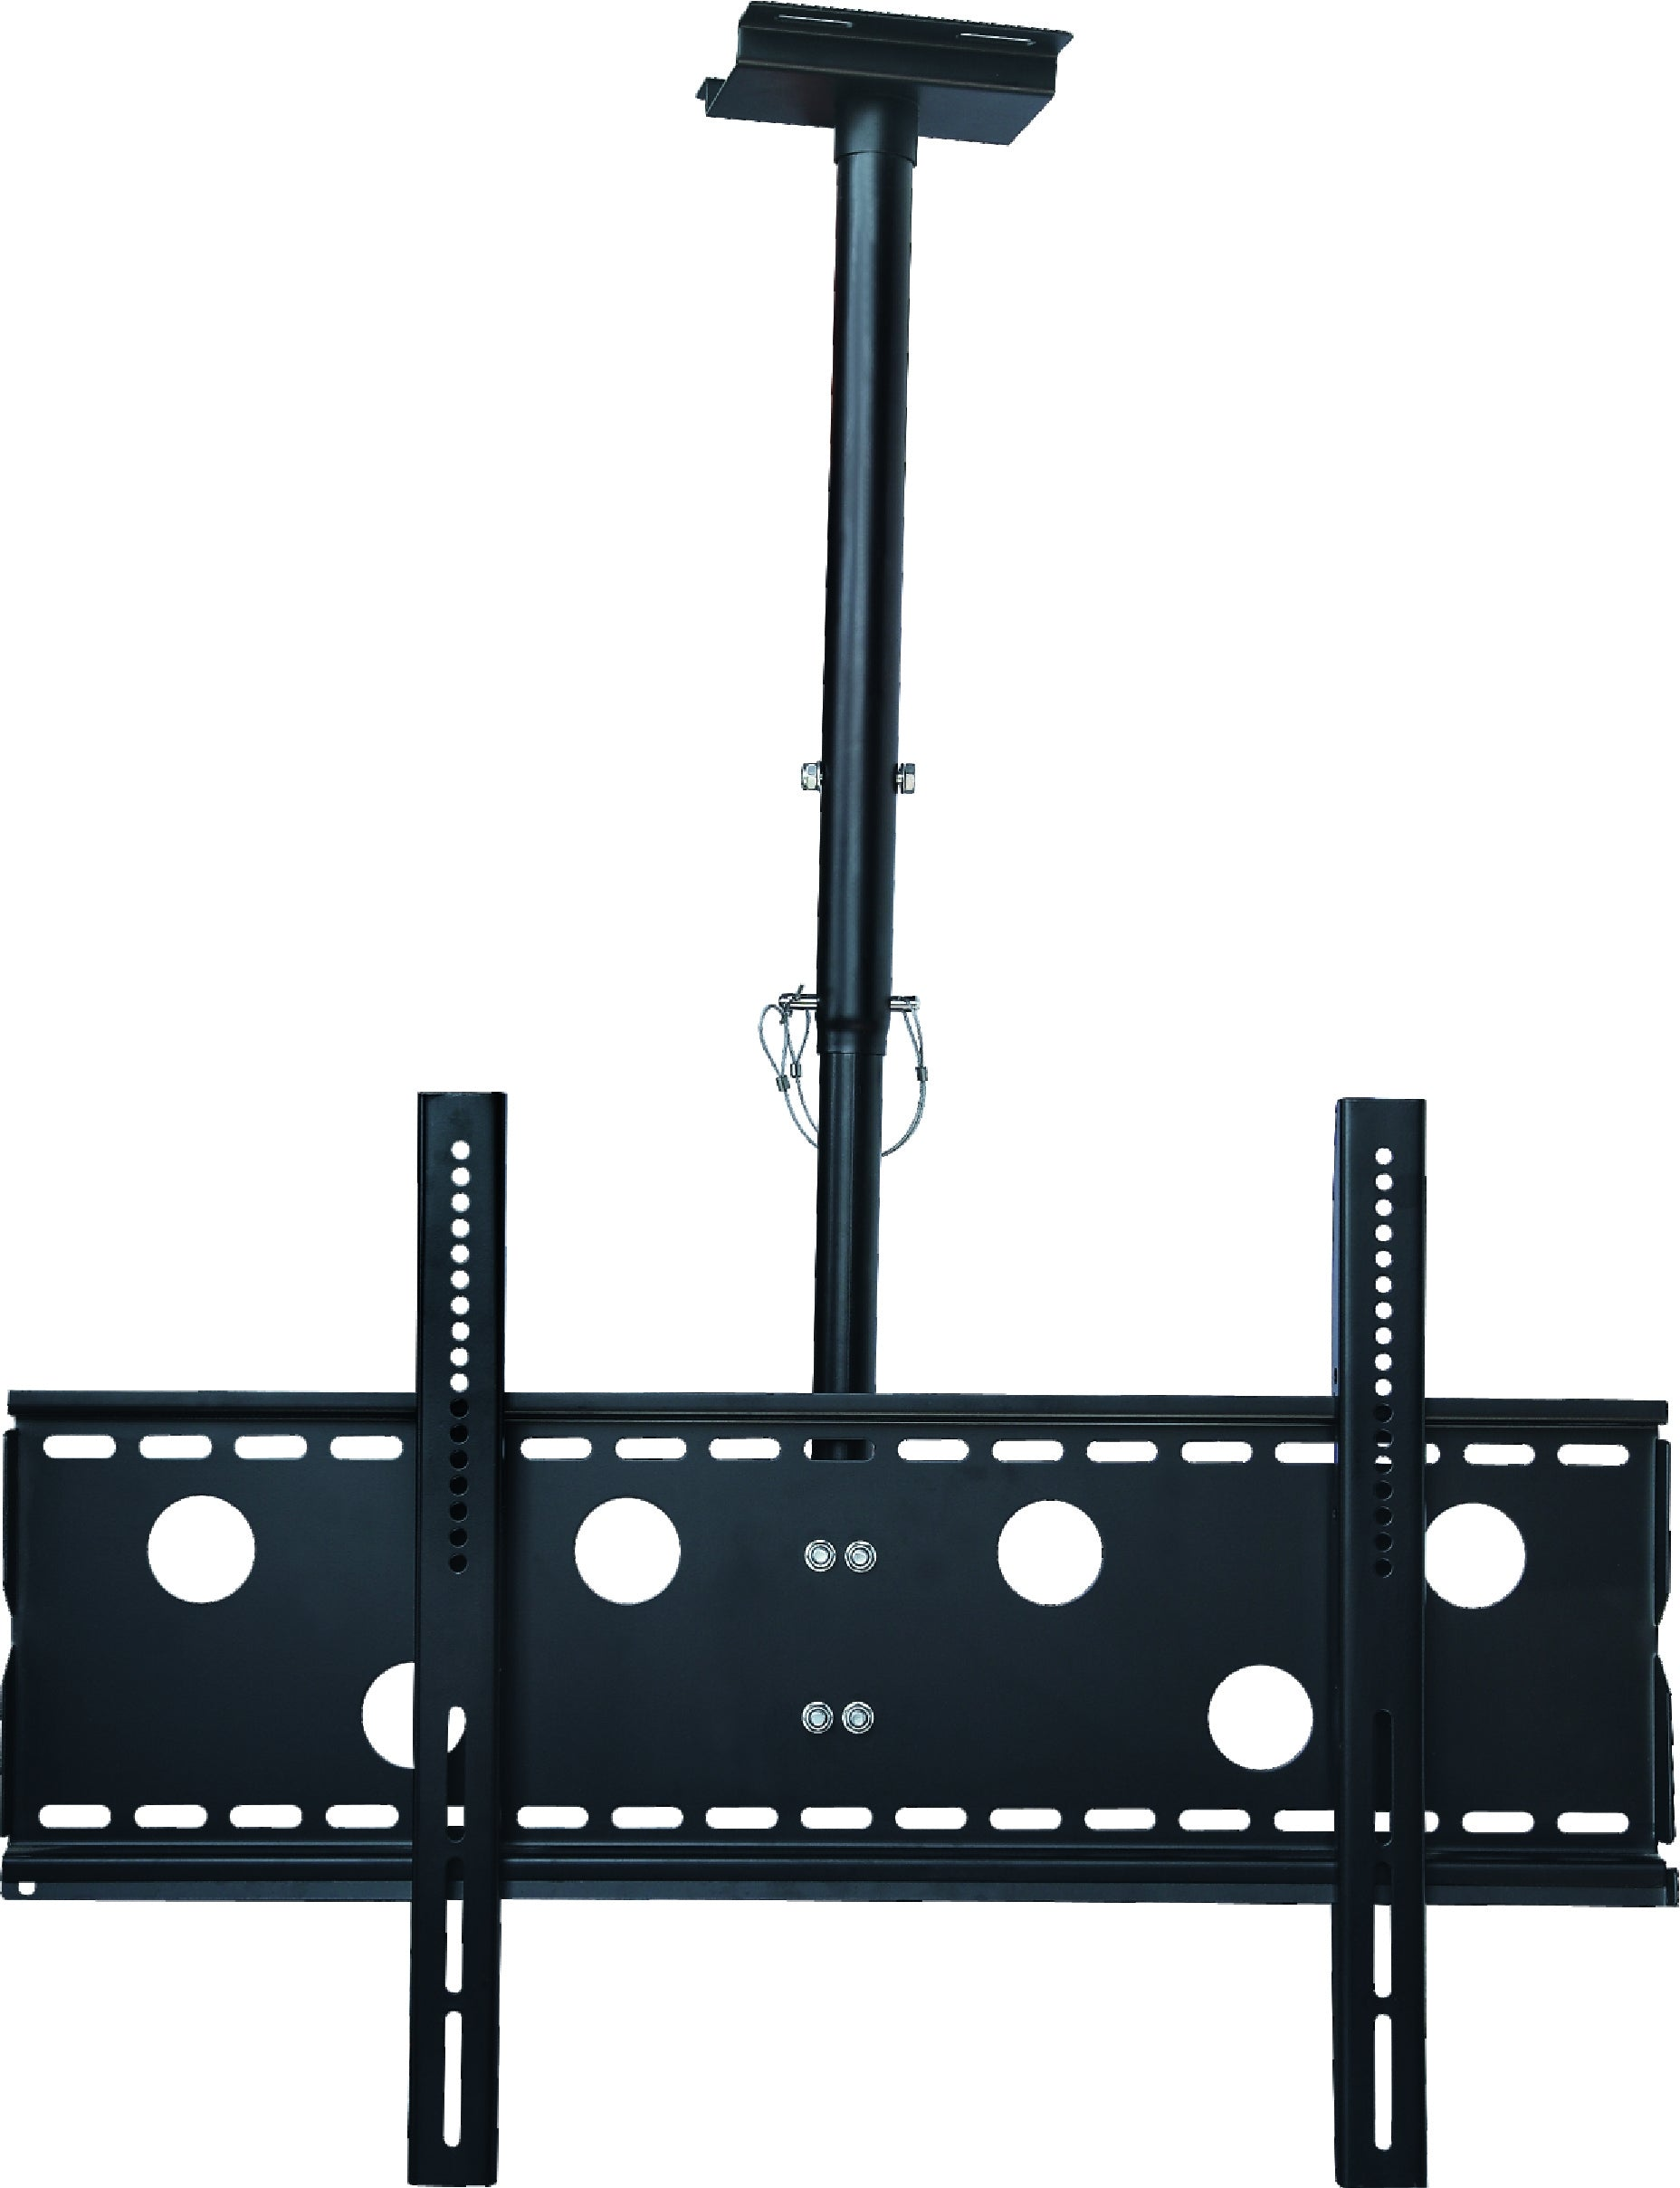 64-2102L Plasma / LED / LCD TV Tilt Celling Mount Bracket for 42-70 inches Screen